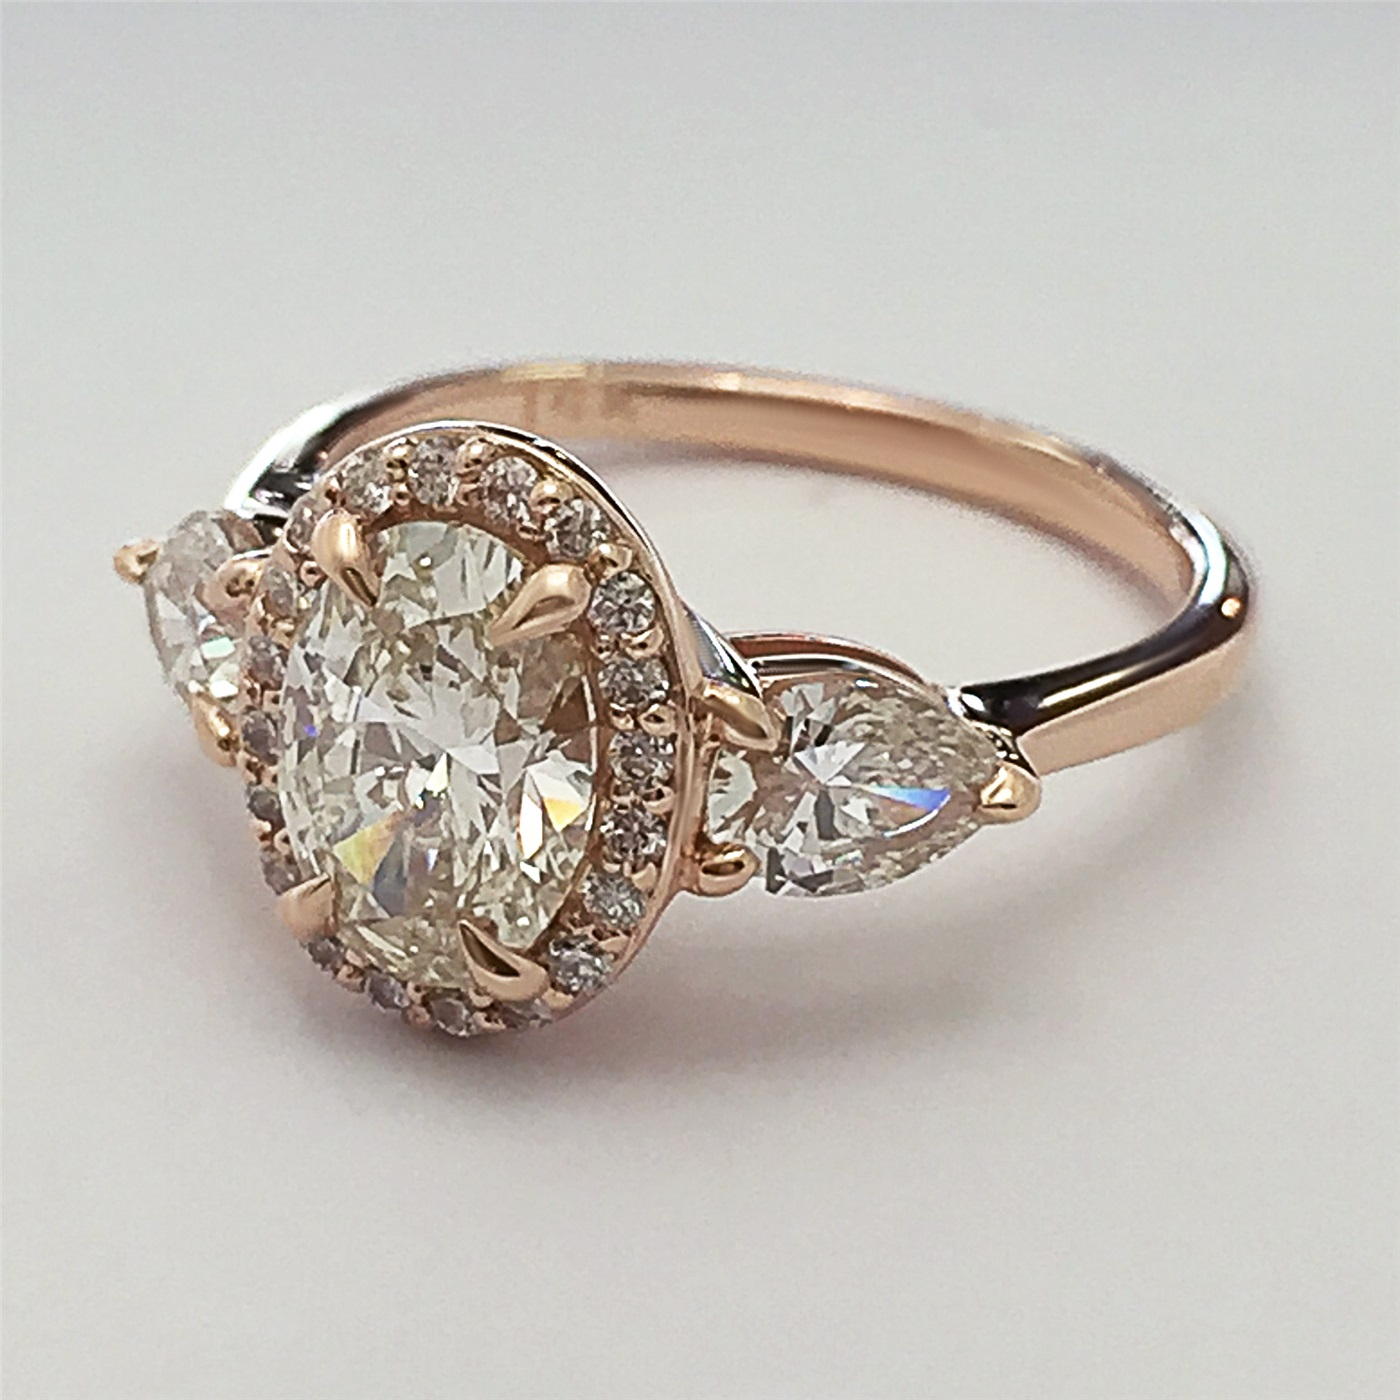 Oval Shaped Diamond Engagement Ring With Pear Shaped Diamonds On The Side Throughout Oval Shaped Engagement Rings (View 12 of 25)